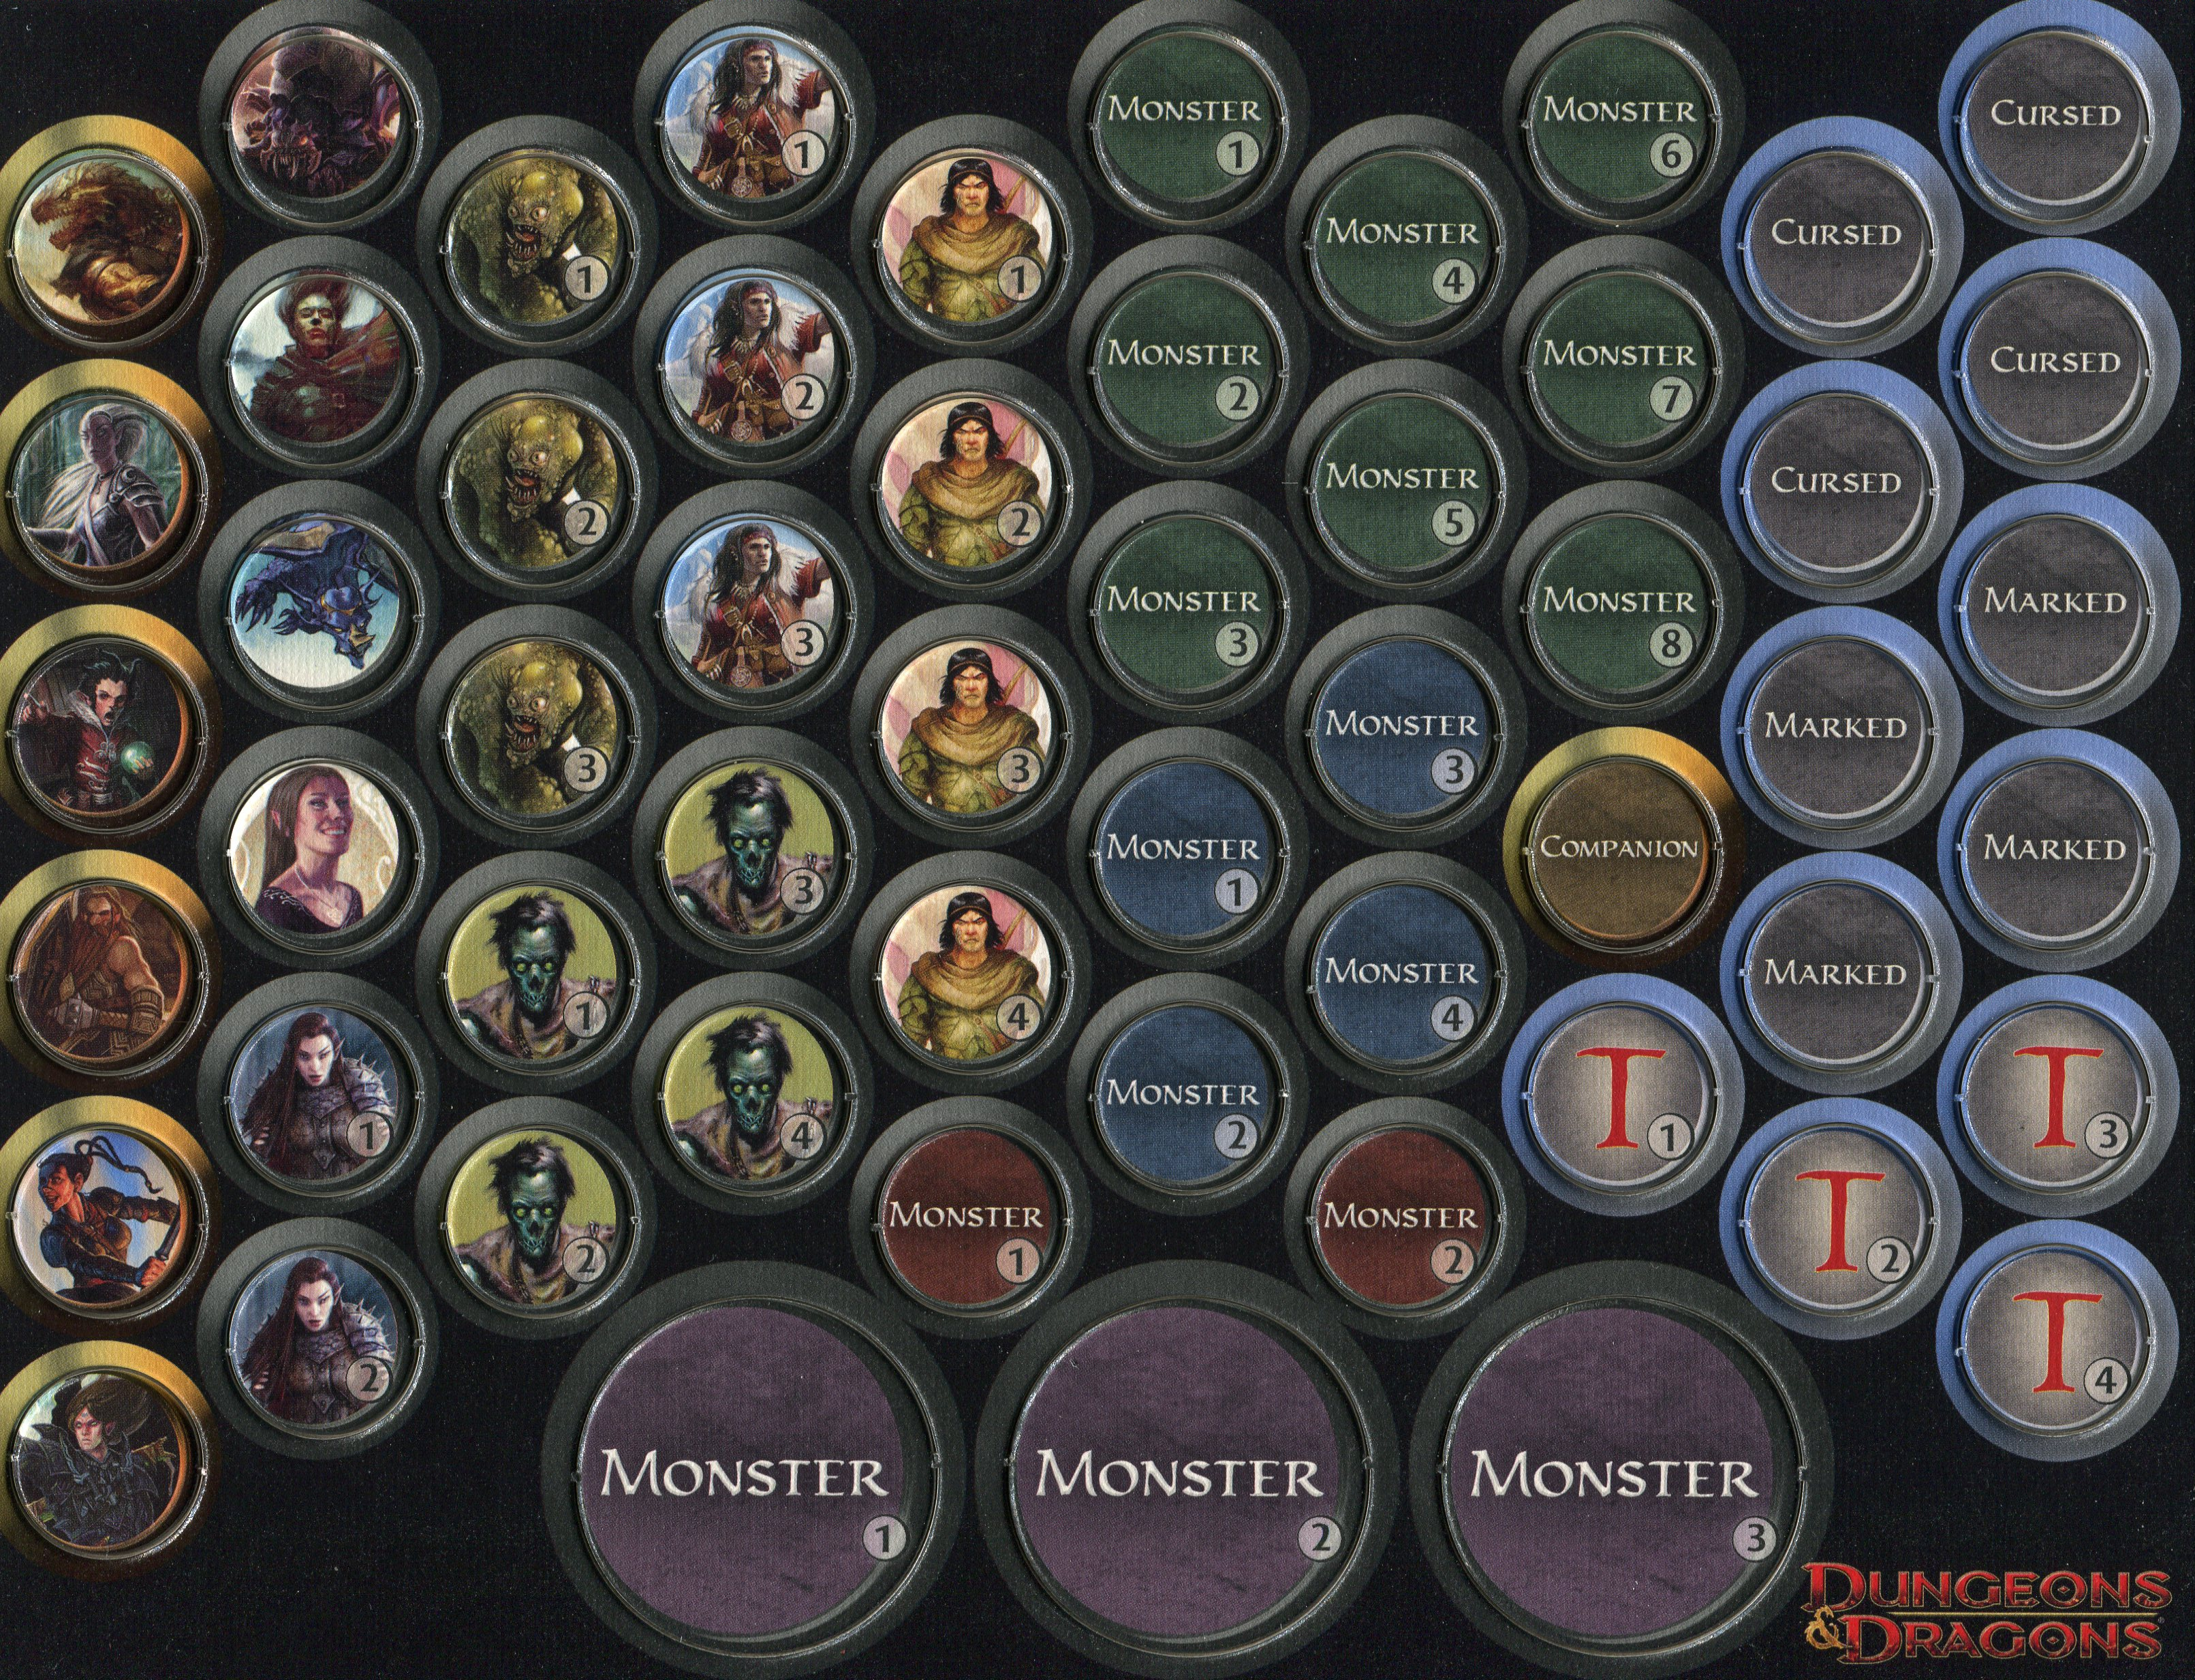 Crush image with regard to d&d monster tokens printable